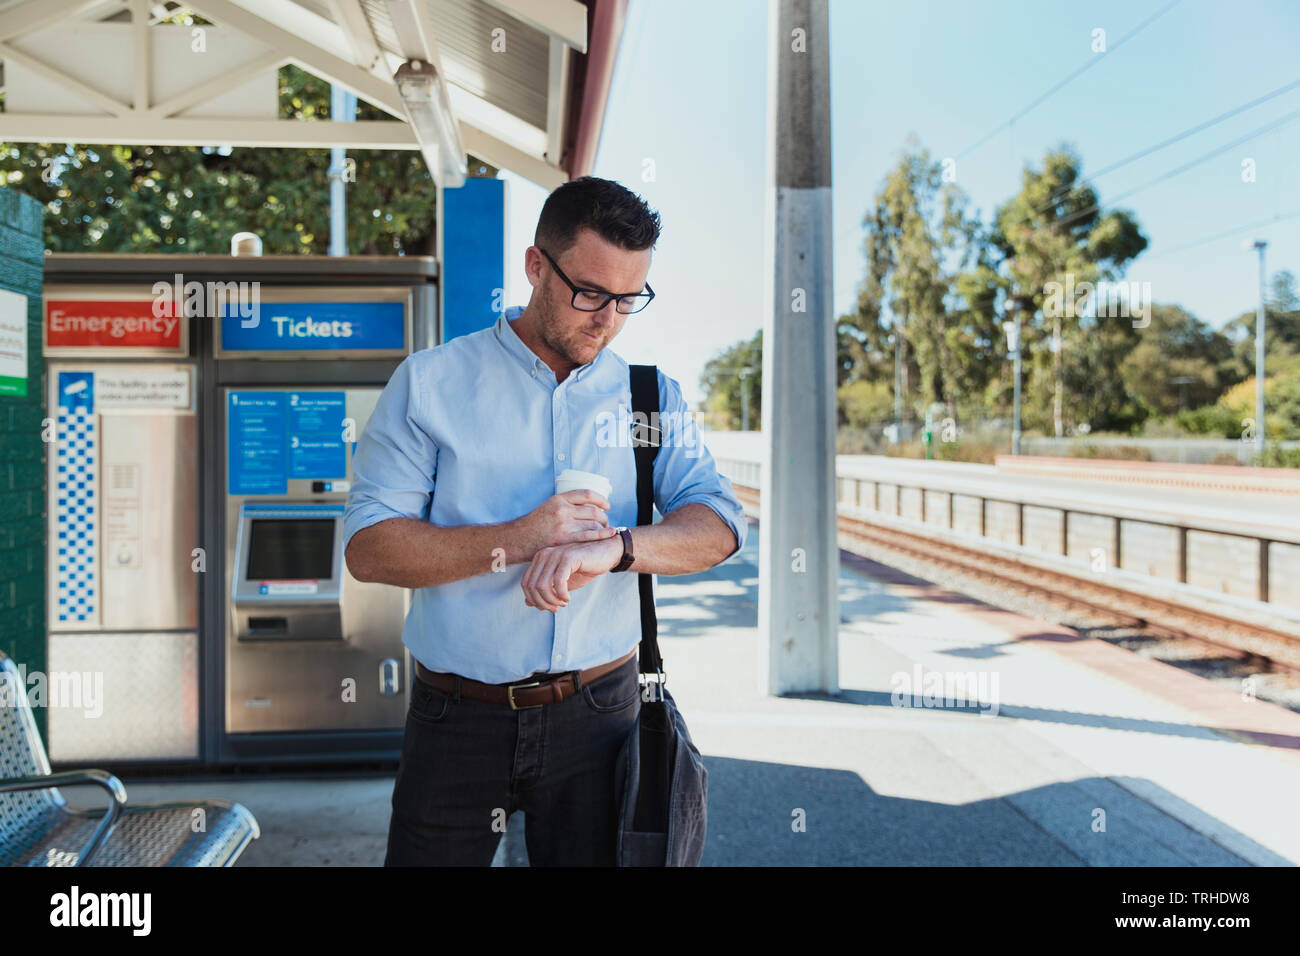 A front-view shot of a mid-adult caucasian businessman waiting at a railroad station platform with a cup of coffee in his hand, he is checking the tim - Stock Image